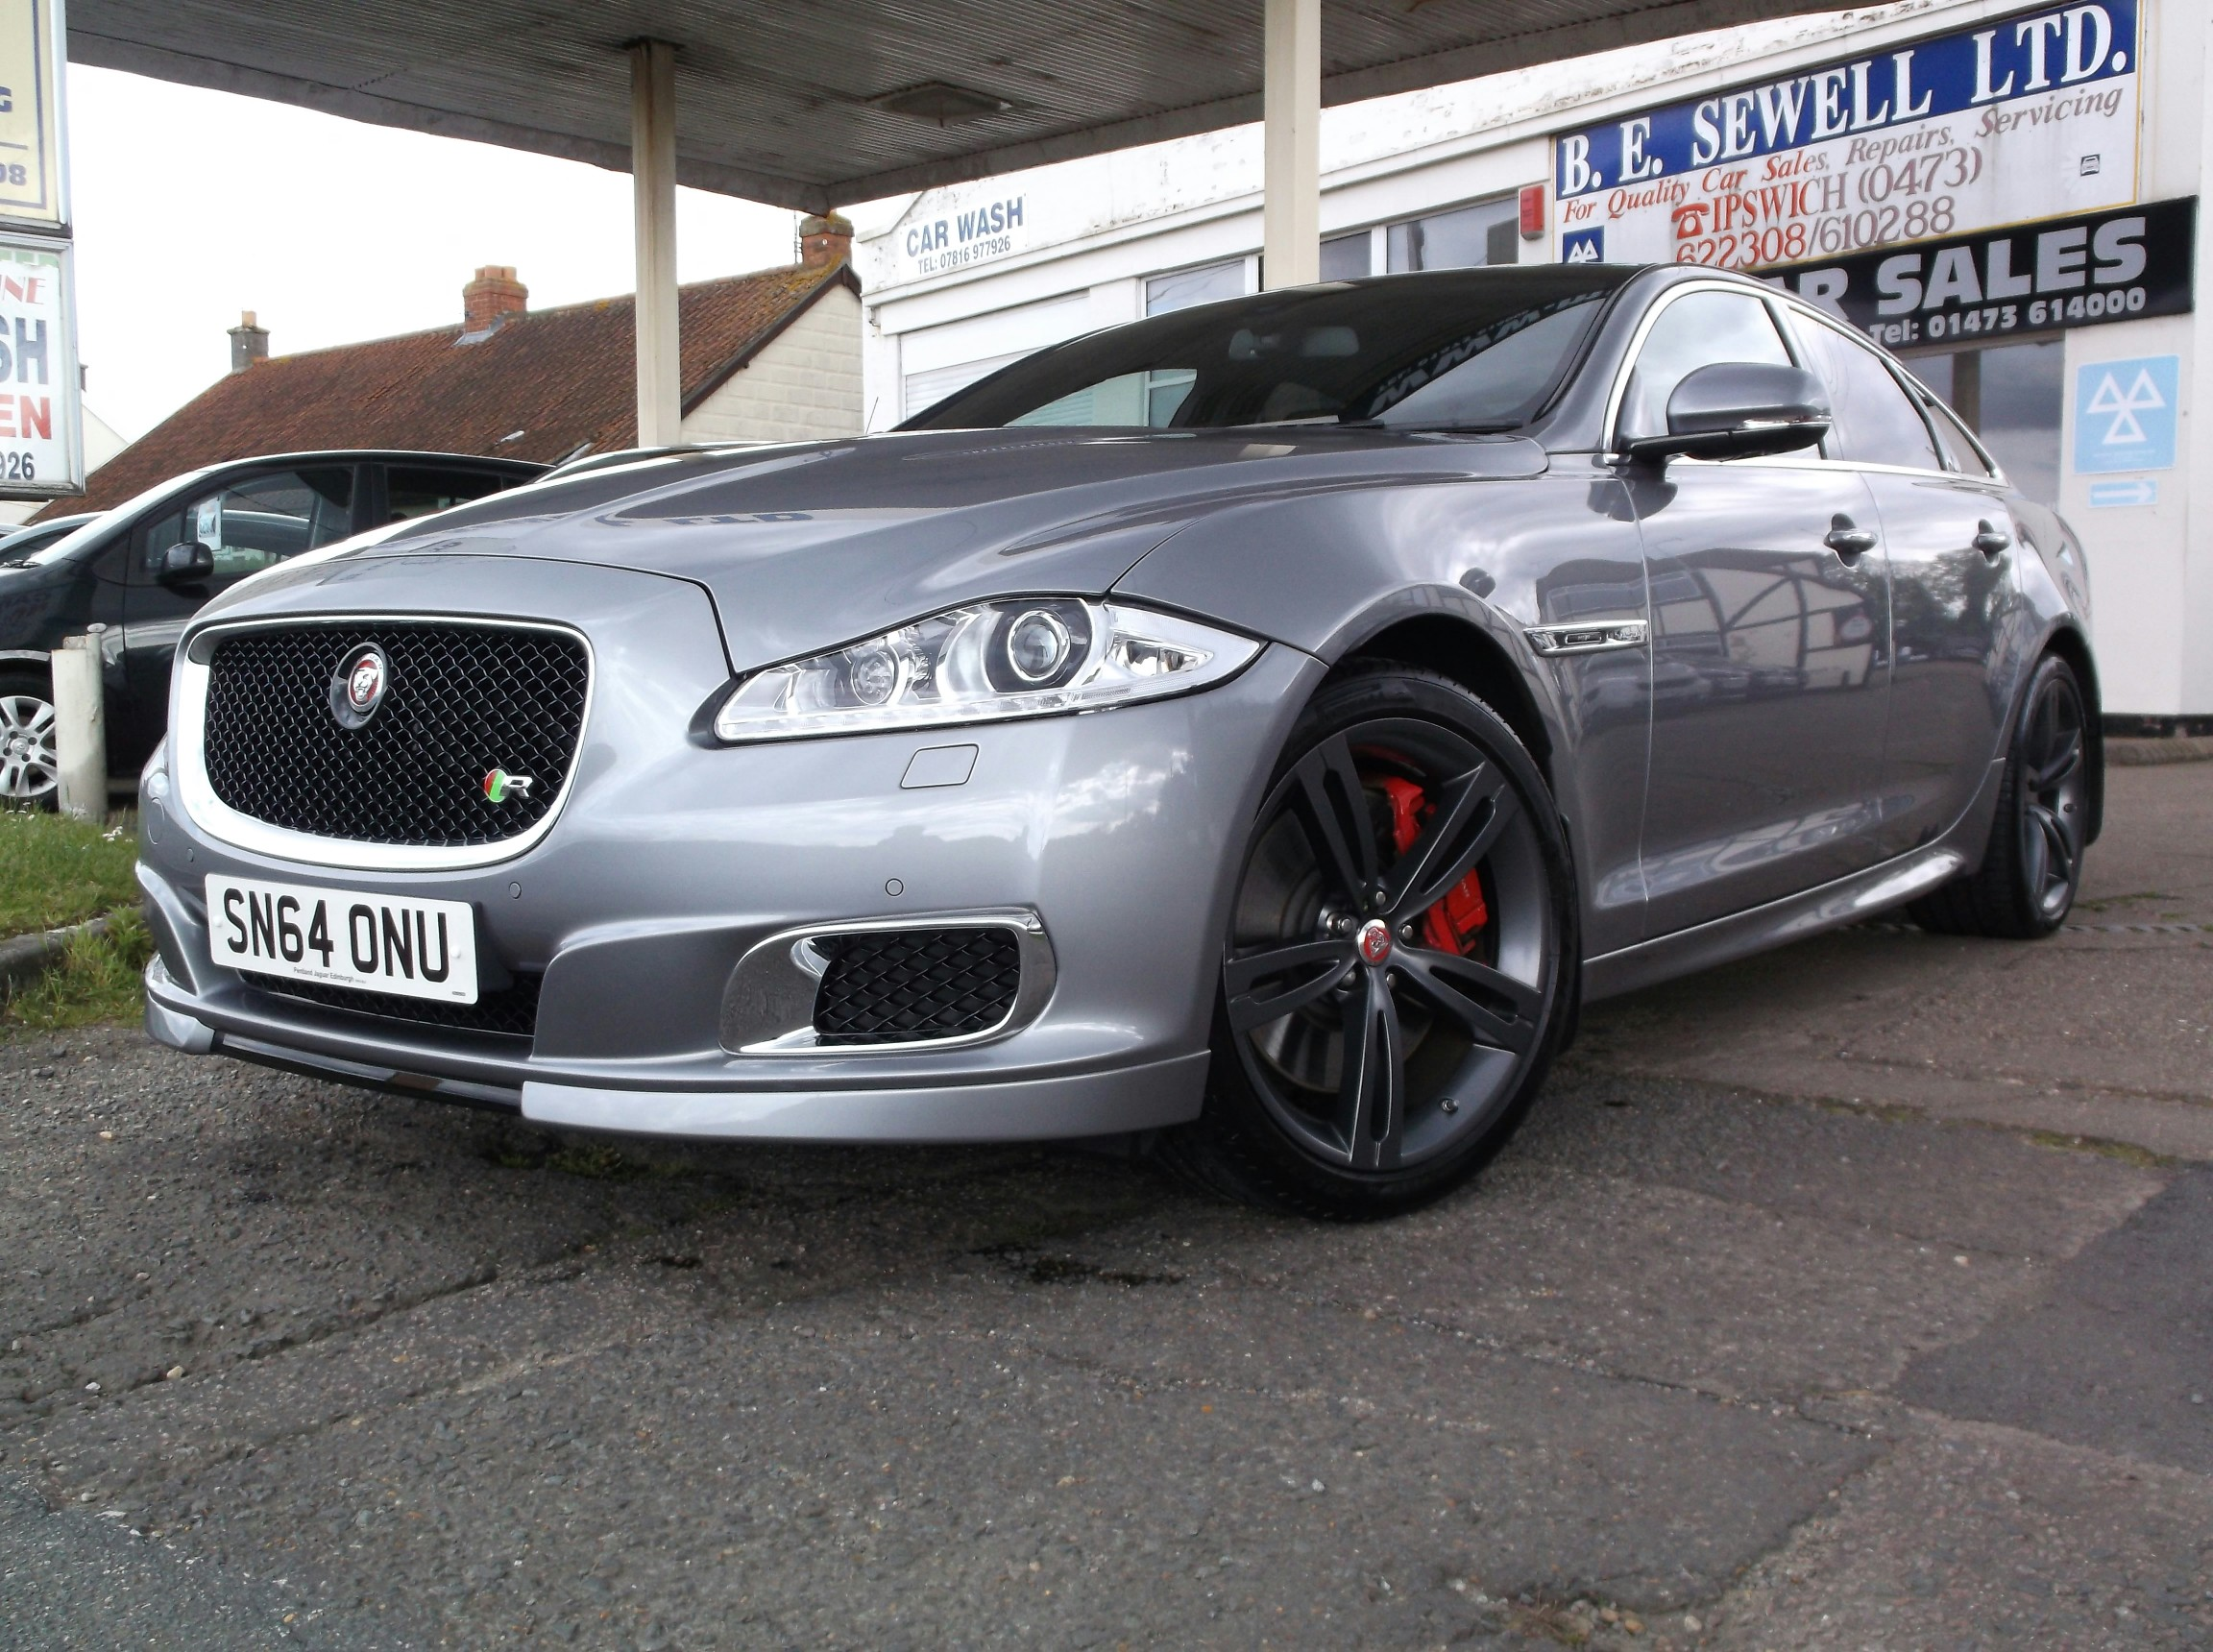 For Sale JAGUAR XJR 5.0 550bhp V8 SUPERCHARGED SALOON, A/C, petrol ...